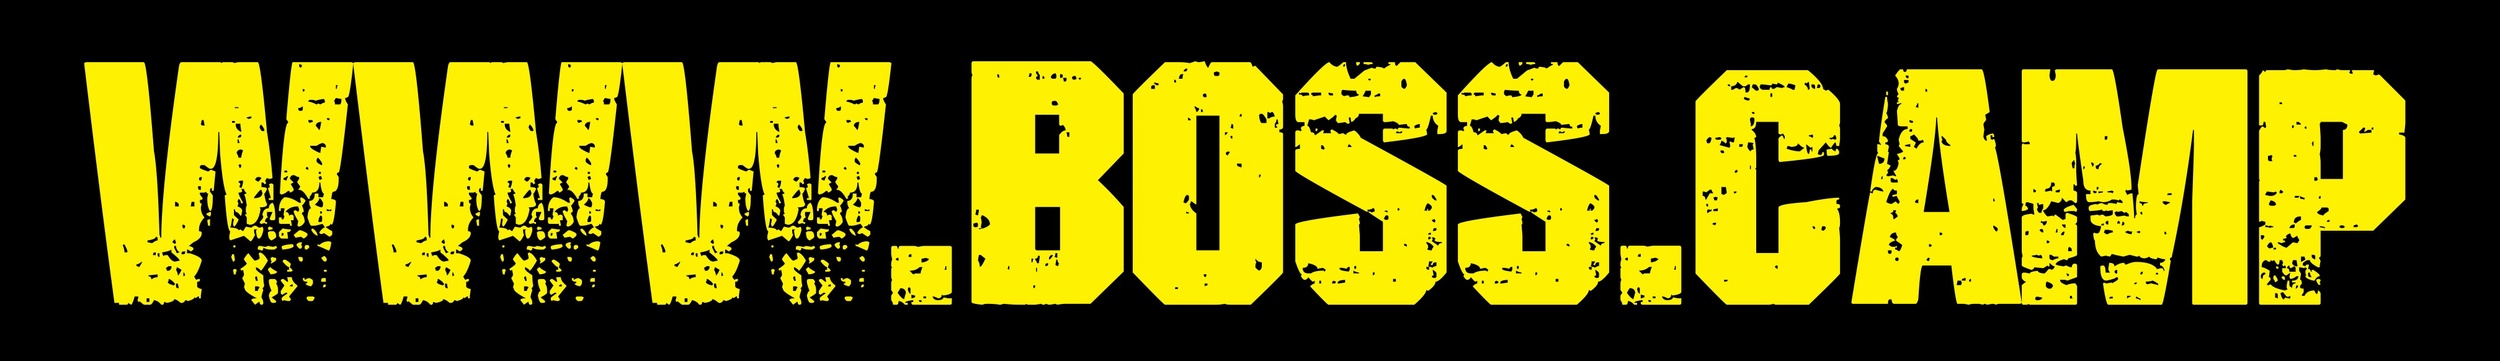 Find out how to make managing easy in just an hour a week with www.boss.camp jpeg